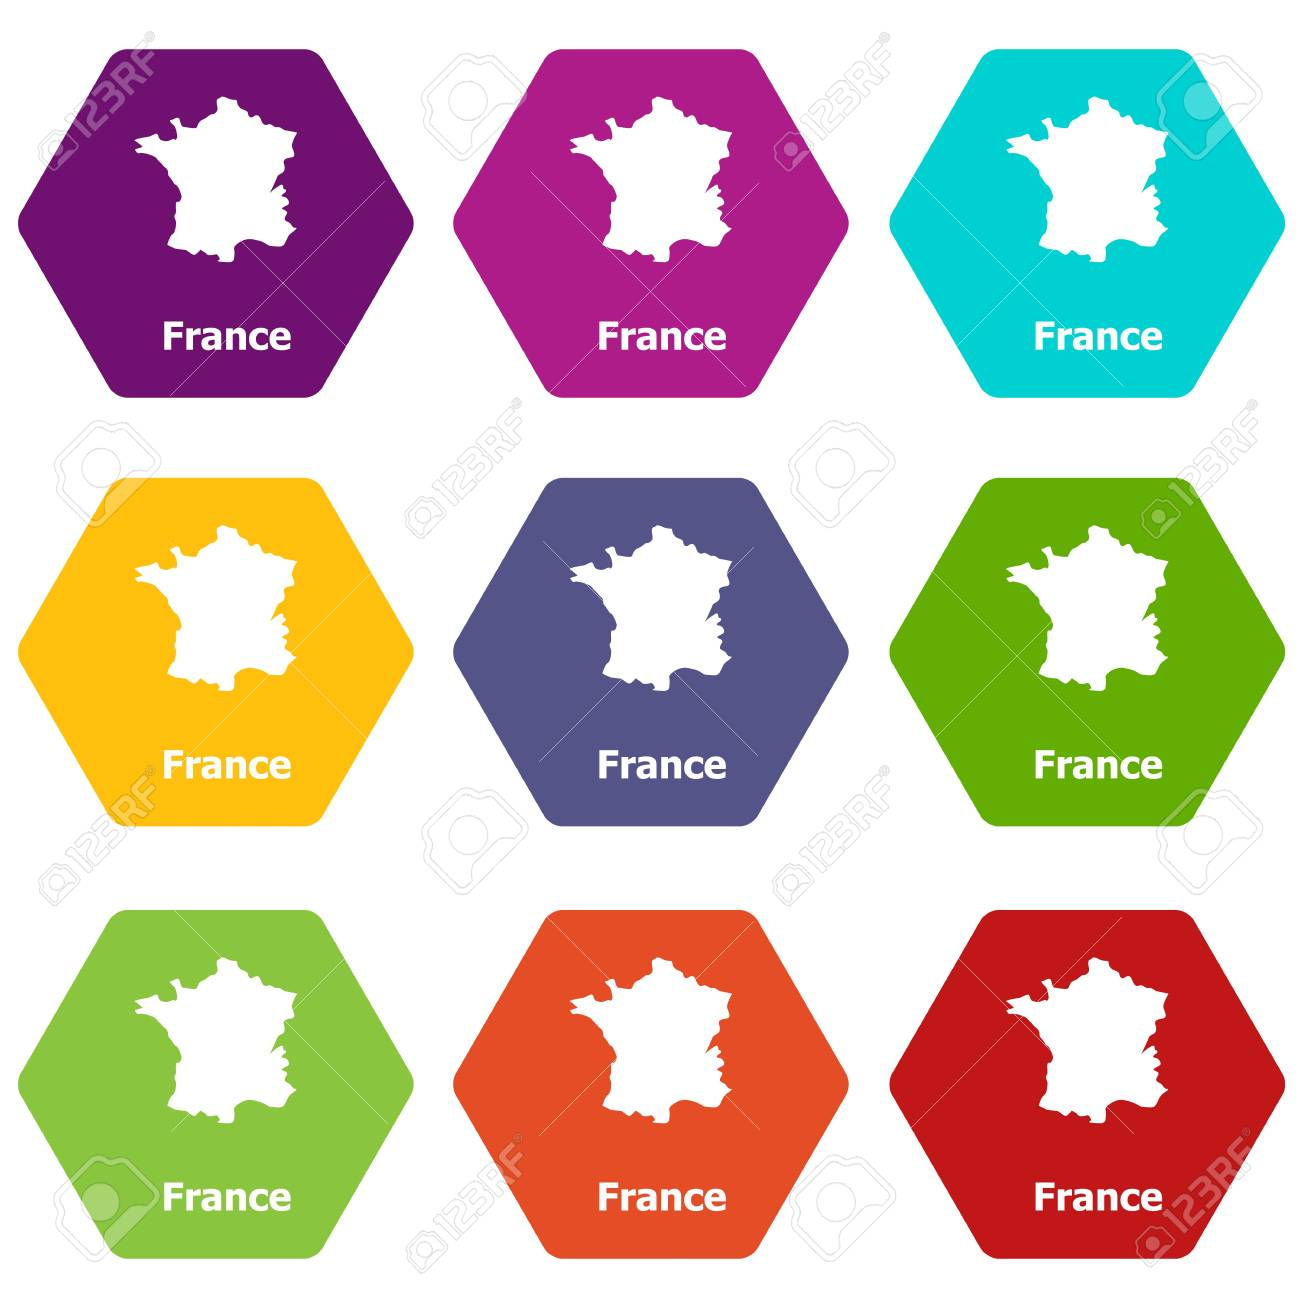 France map icons set 9 vector - 117489308